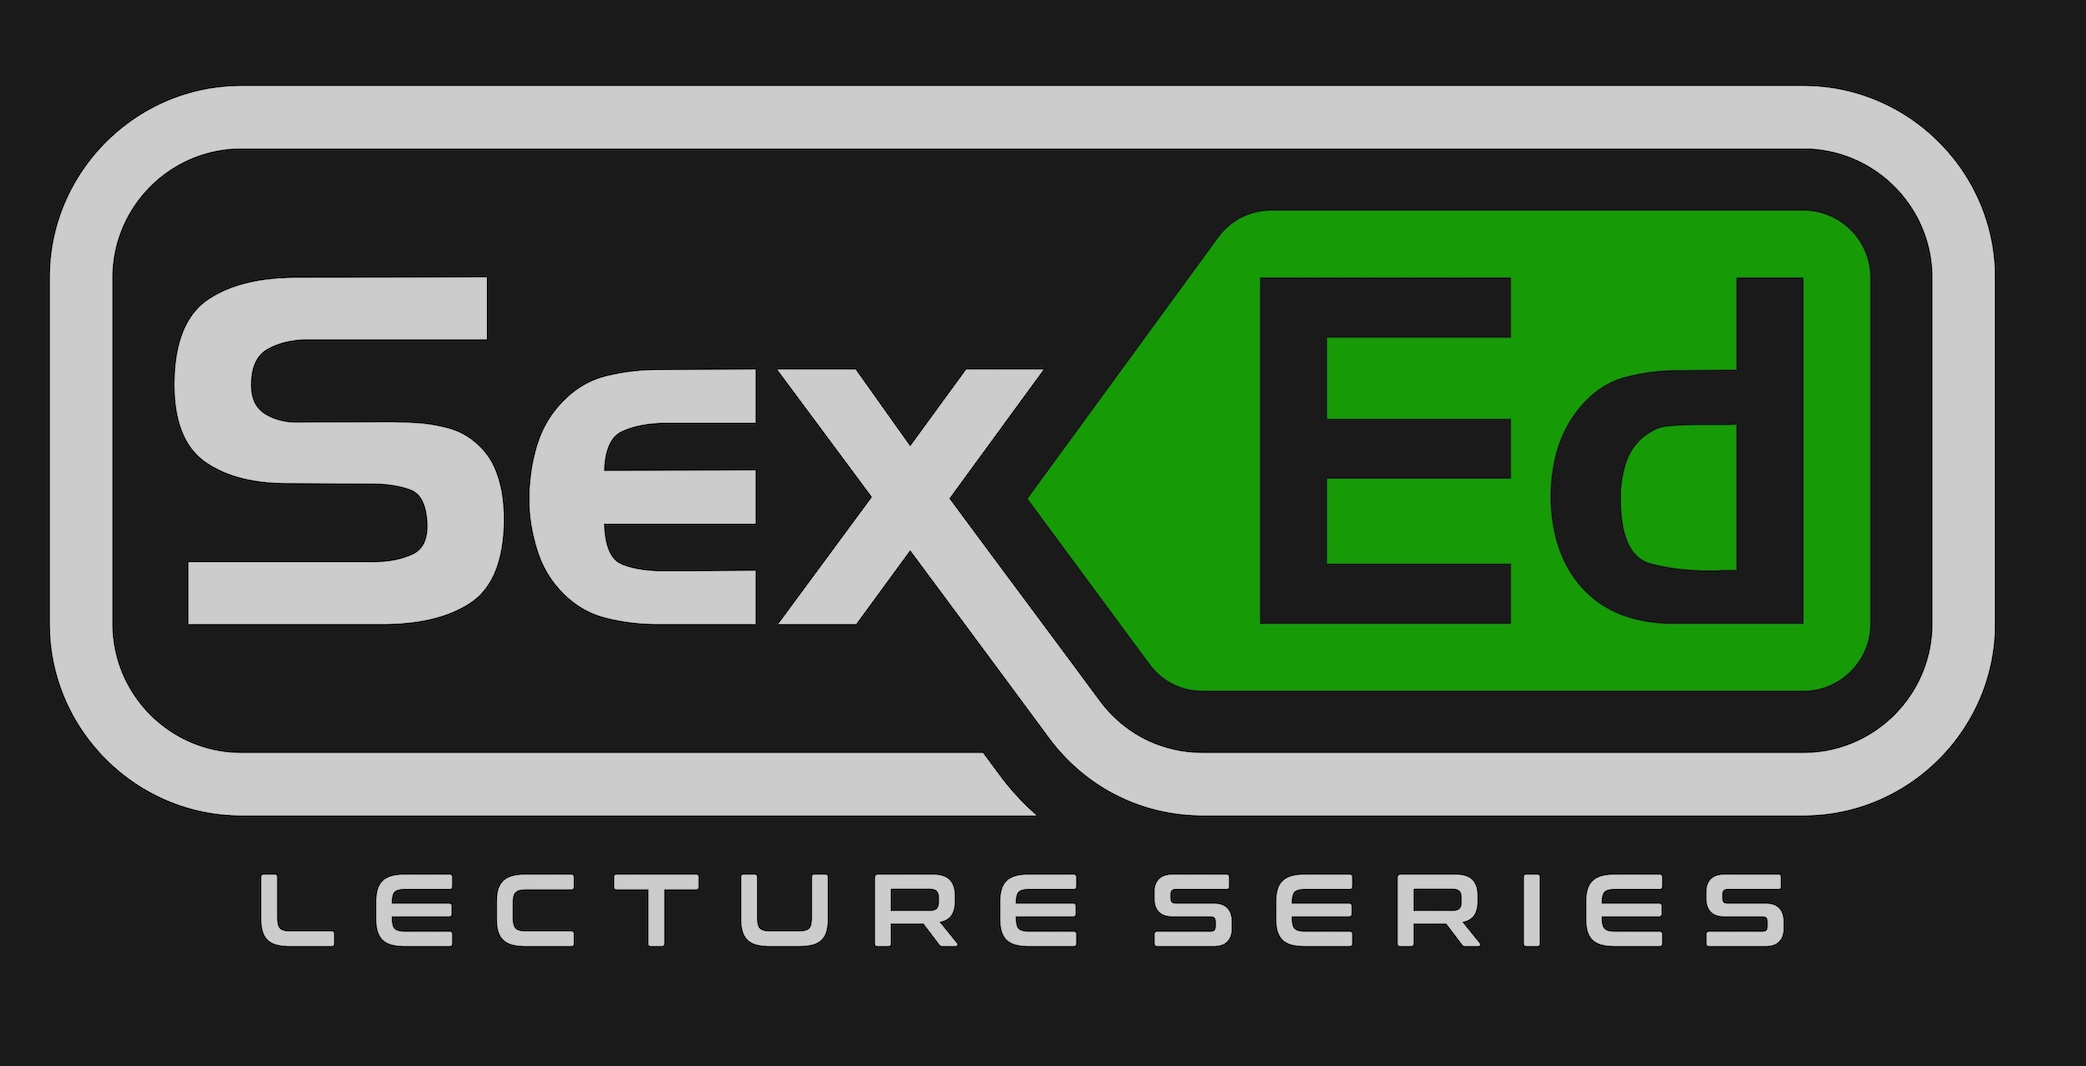 Sex Ed Lectures Series Logo